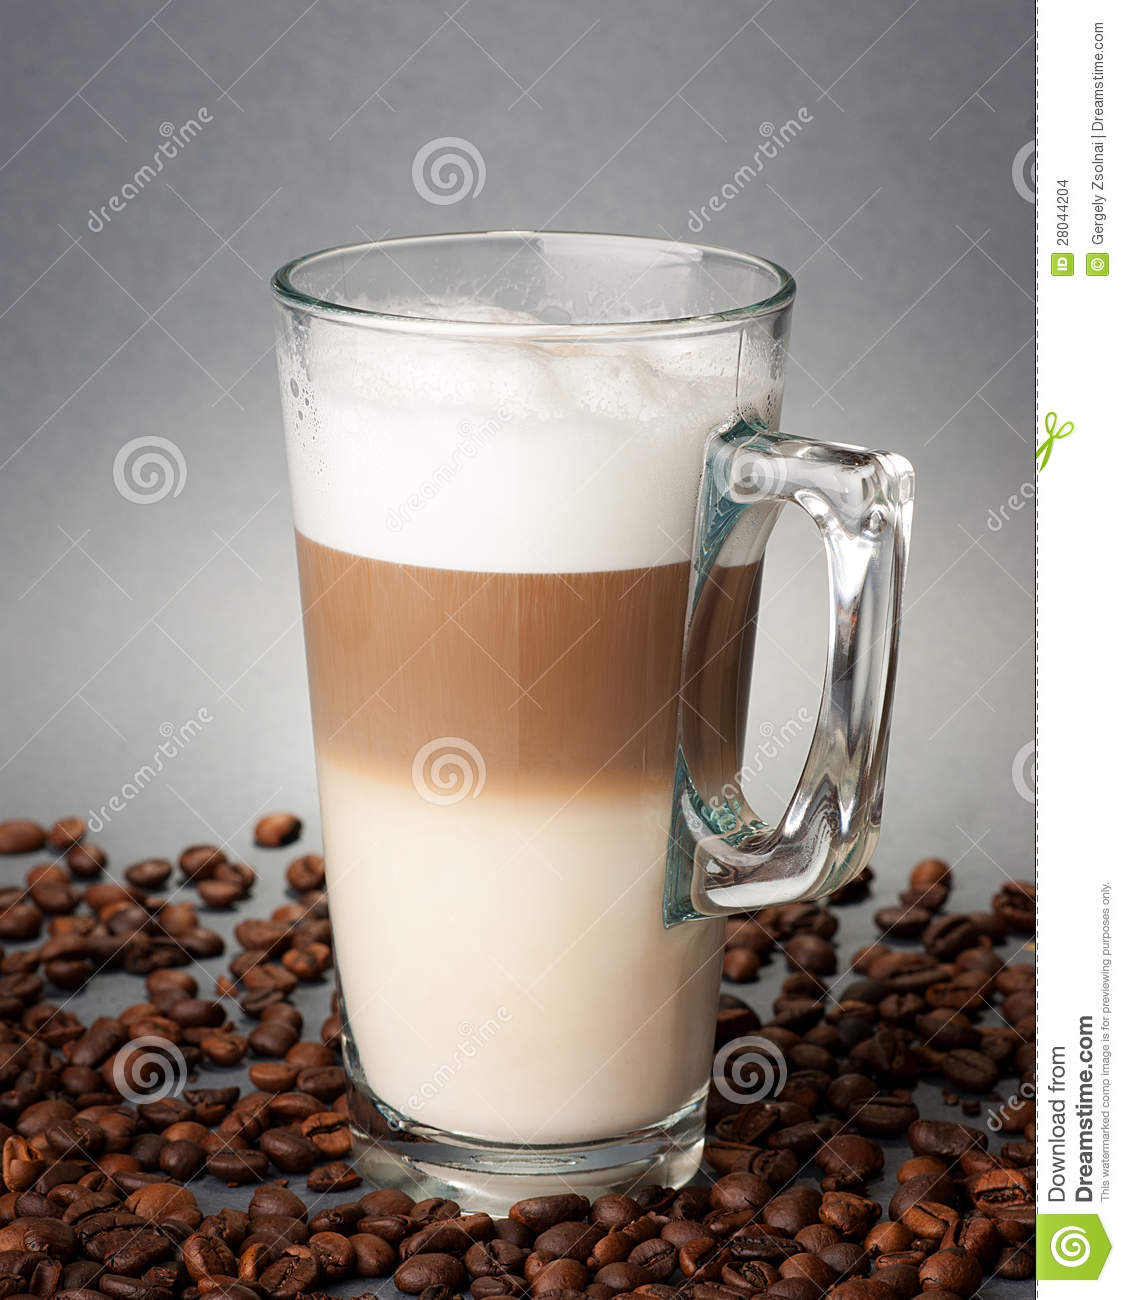 glass of latte macchiato on the coffee beans stock images image 28044204. Black Bedroom Furniture Sets. Home Design Ideas